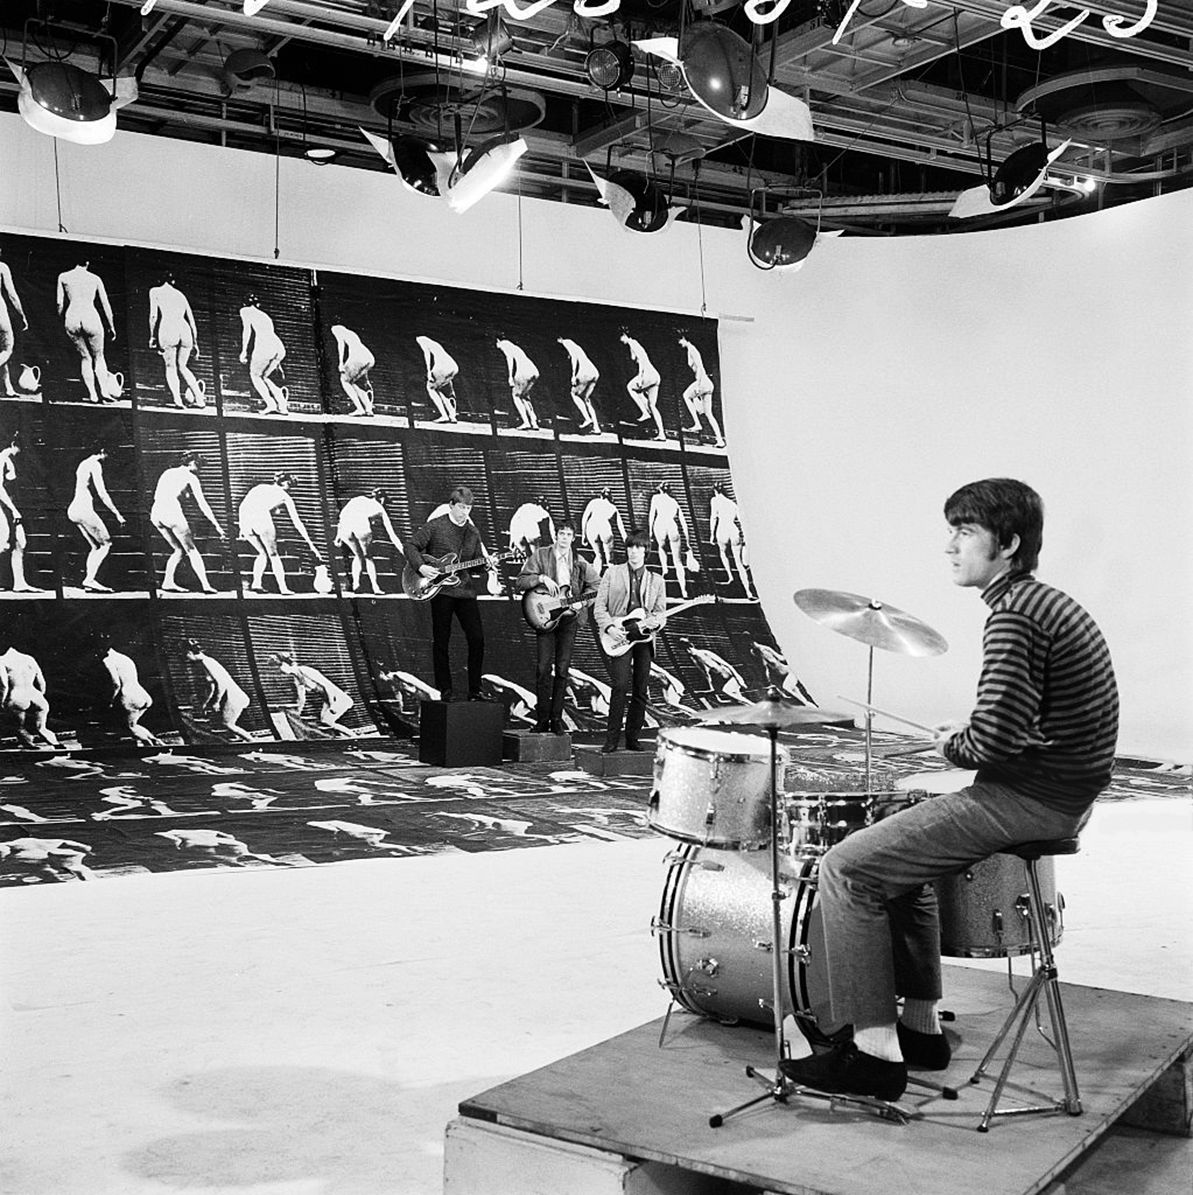 """The Yardbirds at the French TV broadcast (ORTF) for the programme """"Music Hall de France"""", Photo by Louis Joyeux, February 4, 1966"""